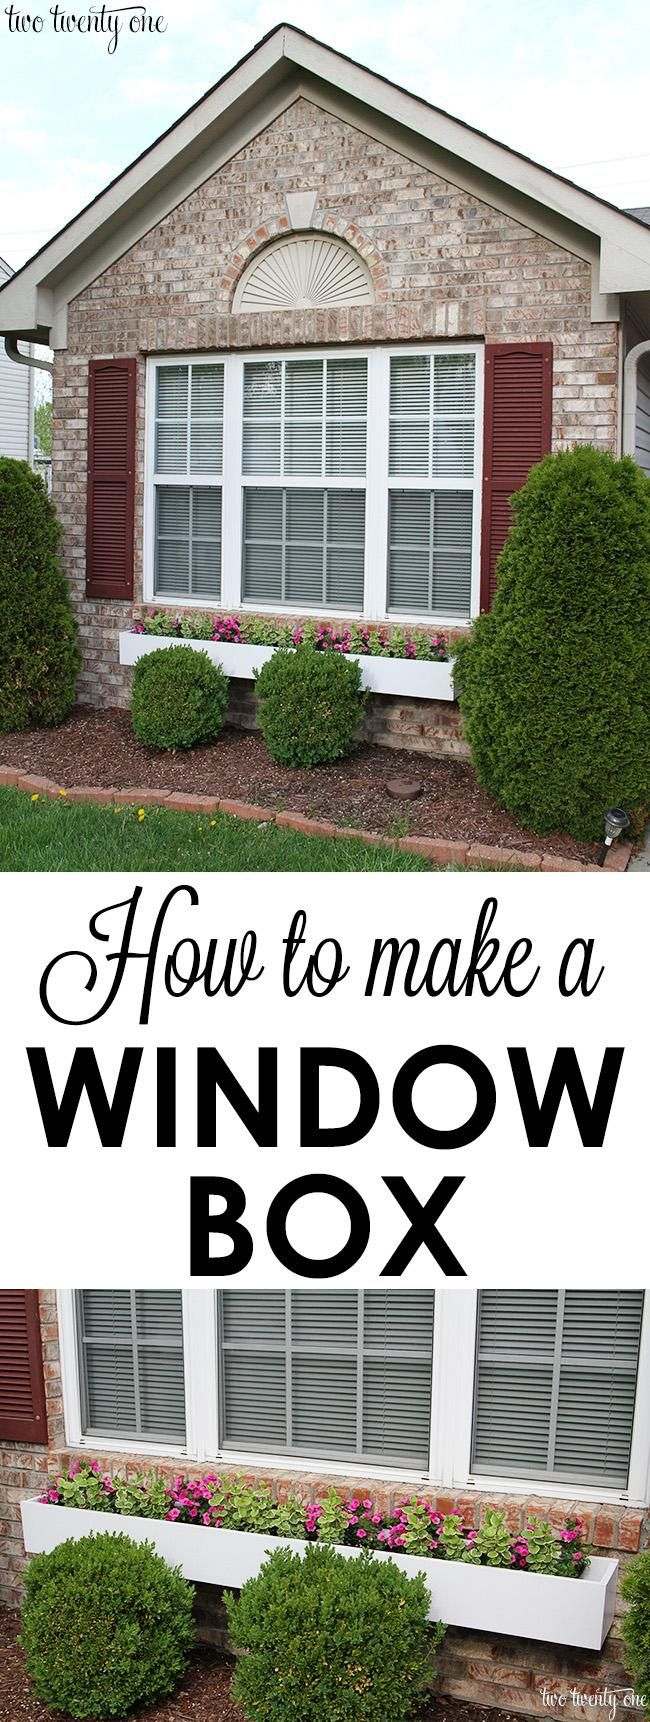 How to make a window box! A GREAT way to add instant